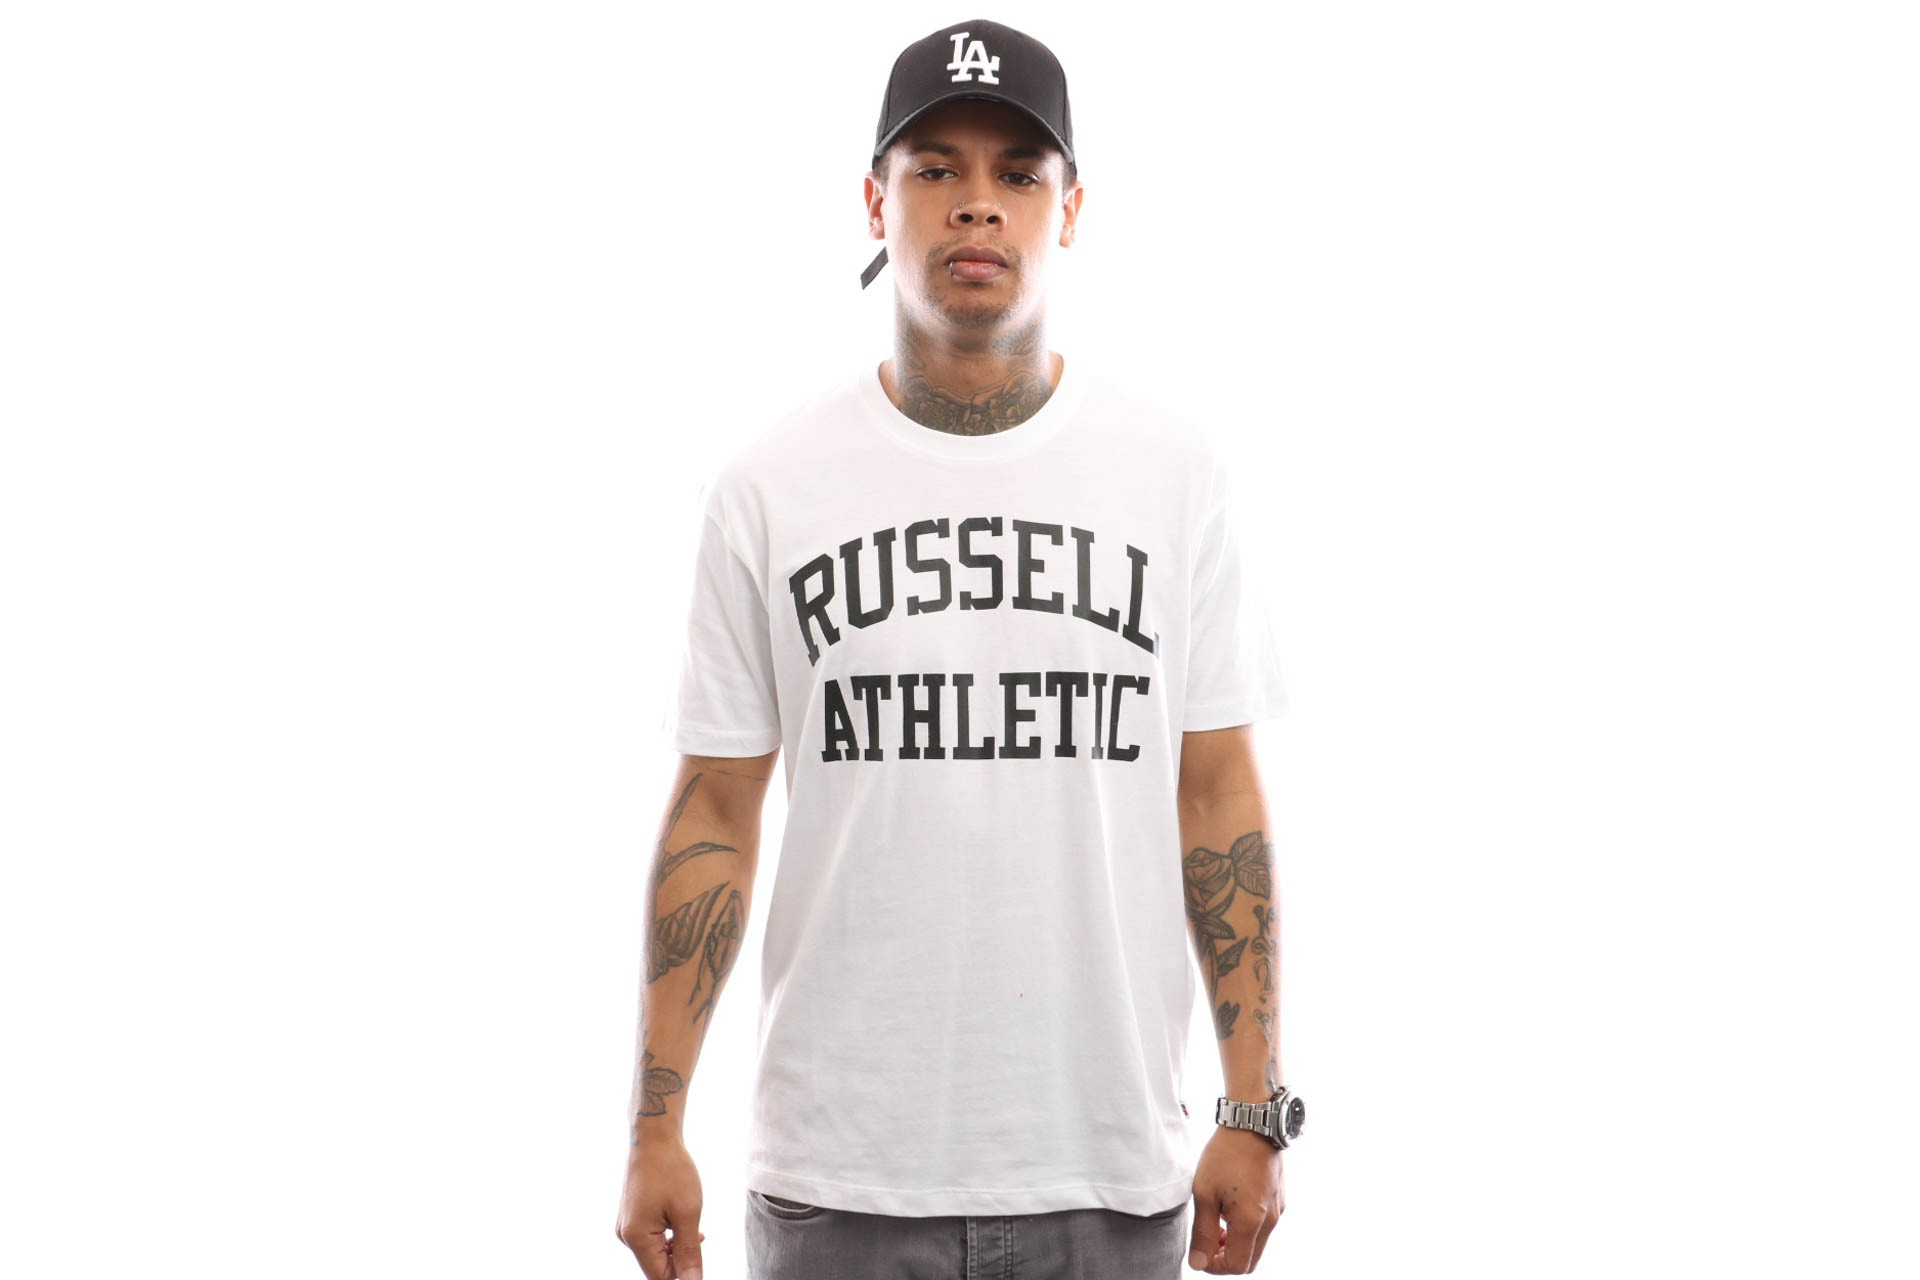 Russell Athletic Iconic Short Sleeve A9-002-1 T Shirt White